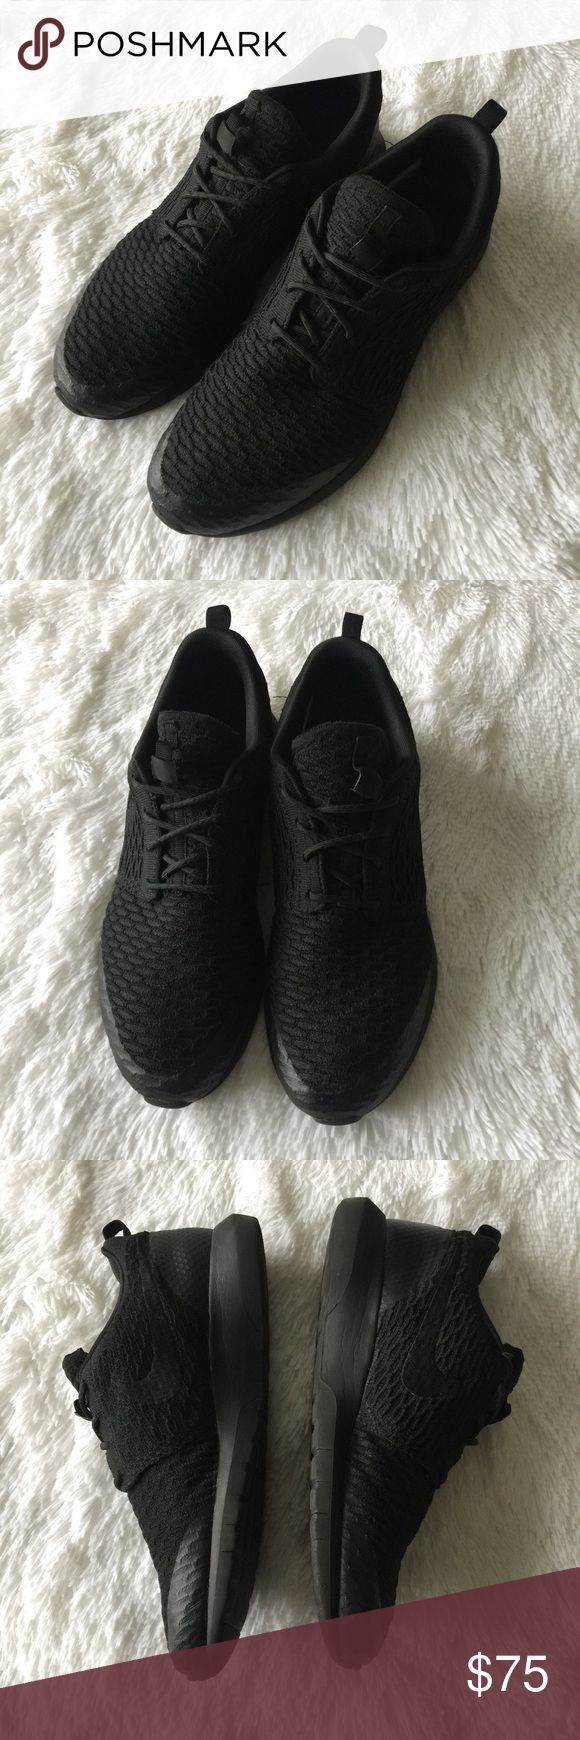 Men's Nike Roshe One Pre-loved & In Very Good Condition / Extremely Comfortable / Superior Ventilation come from the Ultra Lightweight Mesh Textile / see pic #6&7 sole is worn a tad but tons of life left Nike Shoes Sneakers